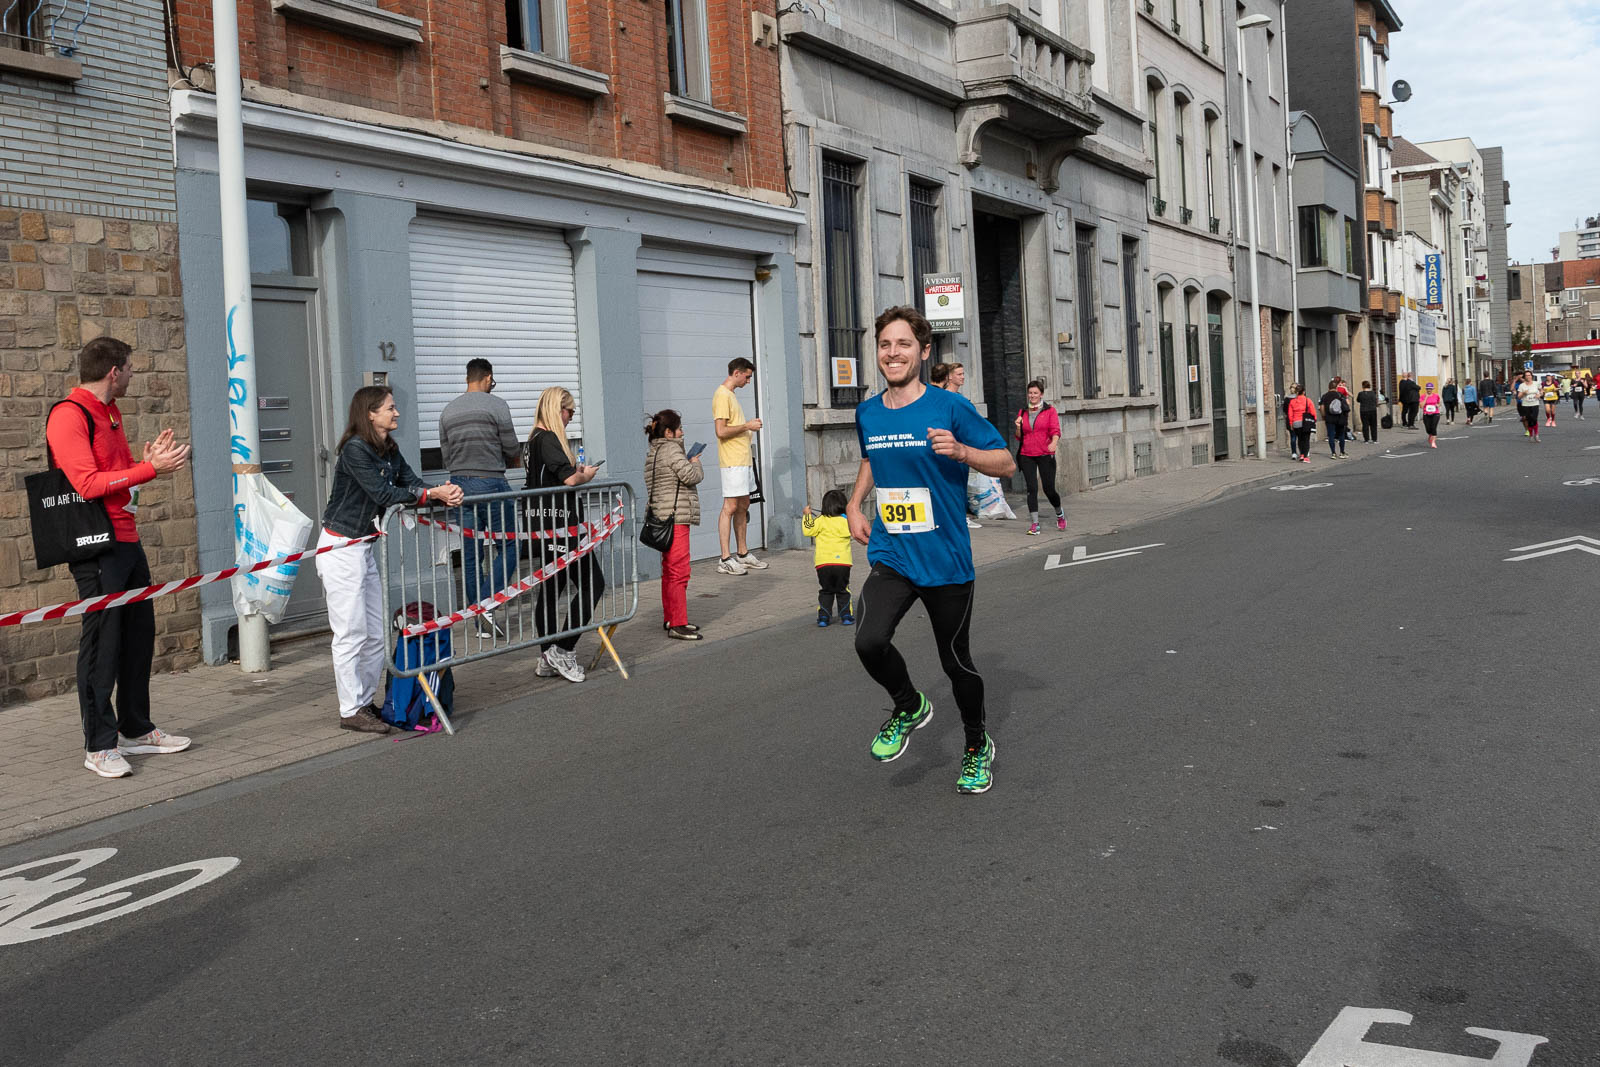 PIC_EVENT_20181020_BRUSSELS-CANAL-RUN_NIKON_017.jpg